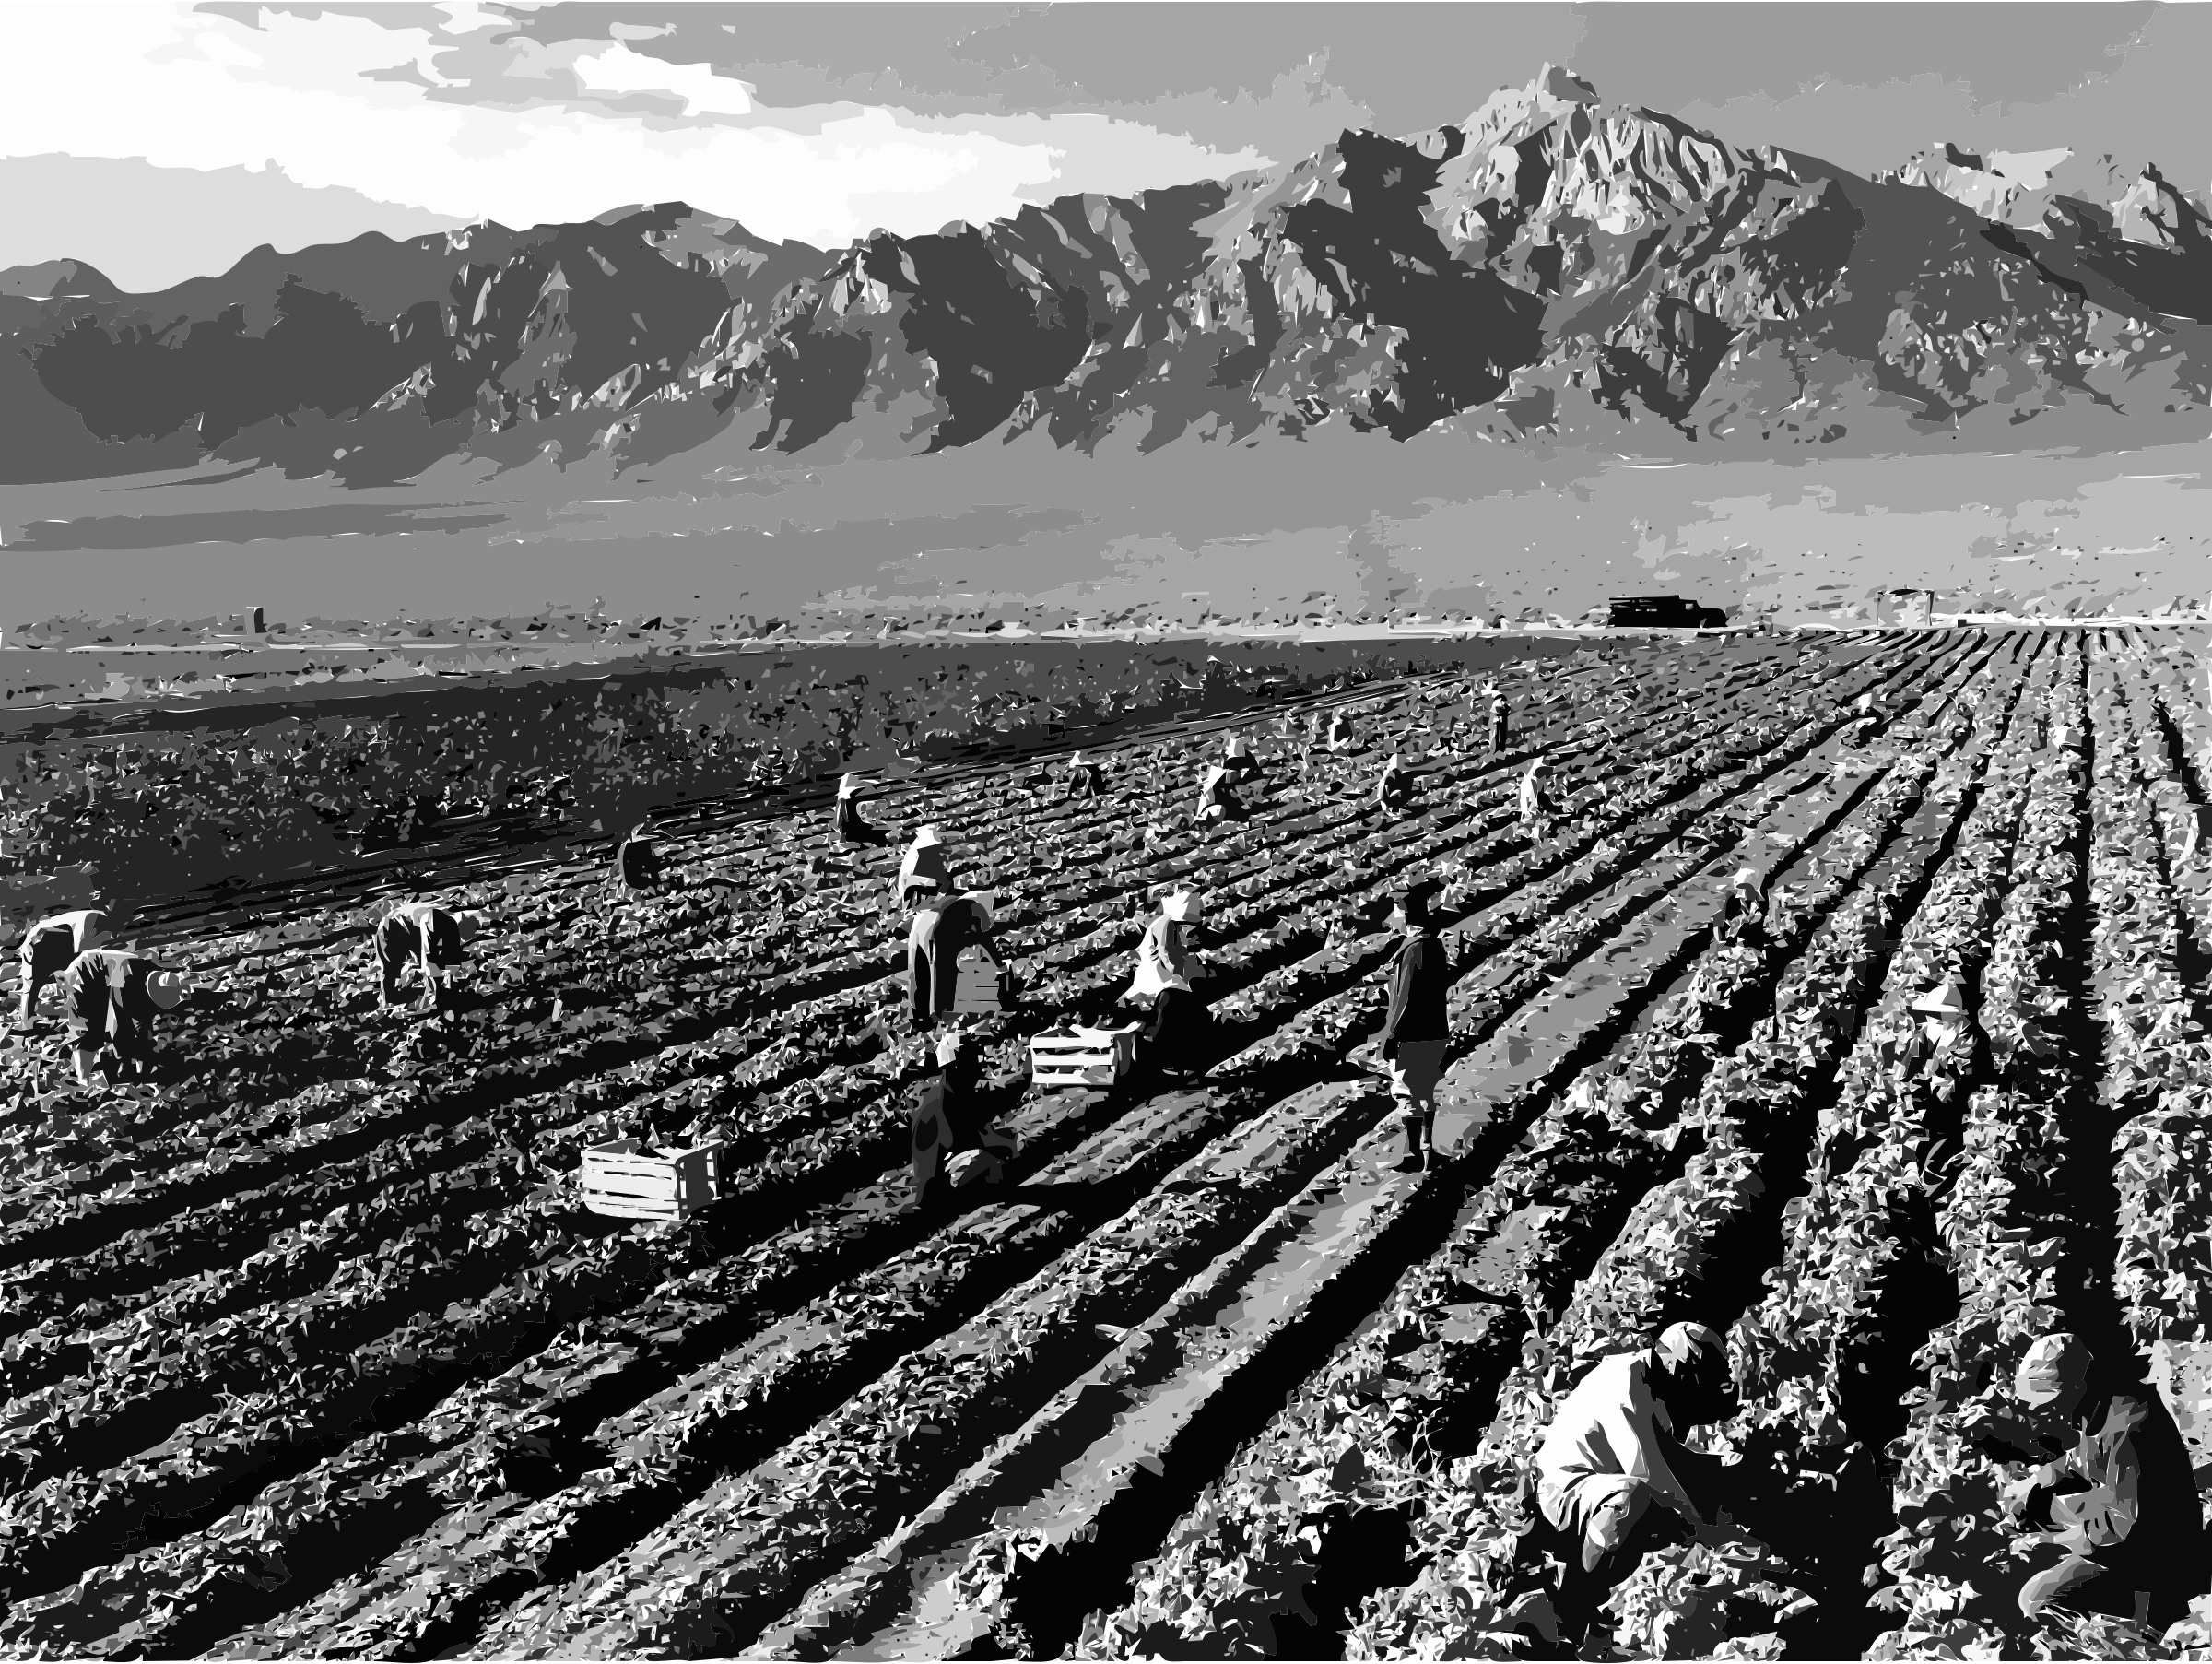 Worker clipart farm worker. Ansel adams workers and